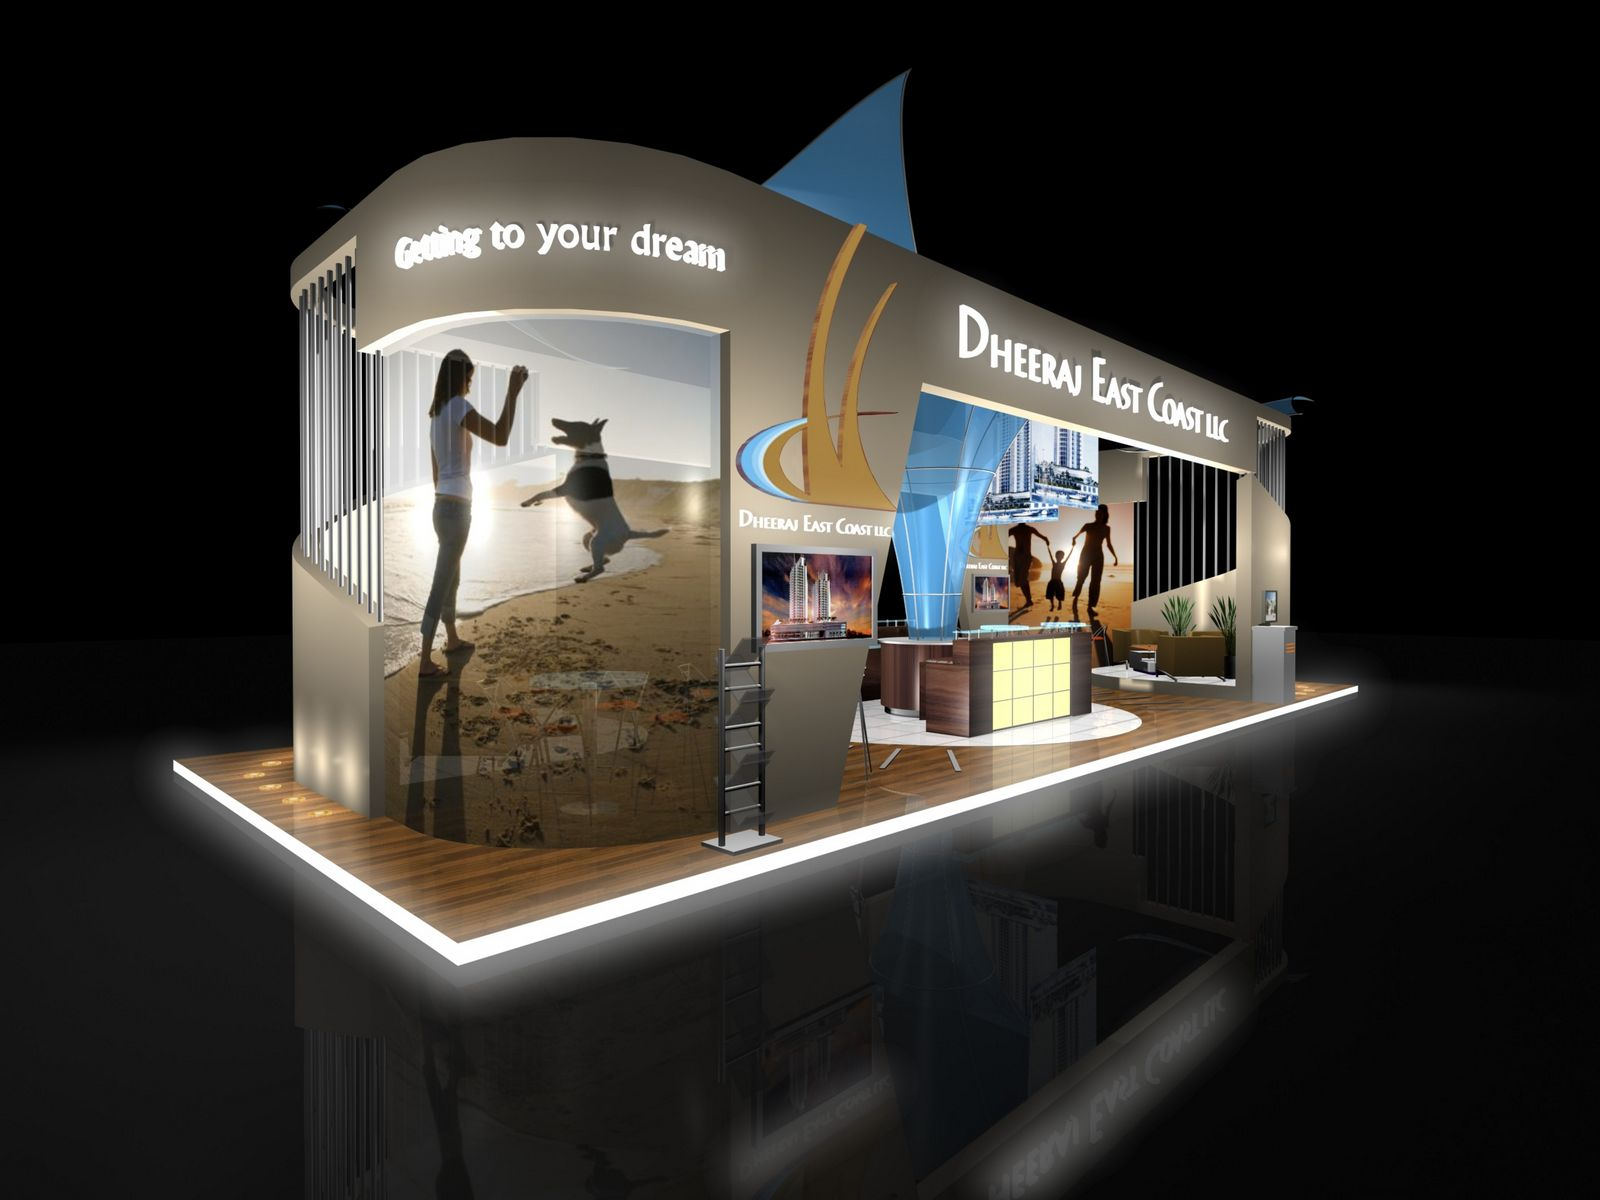 Jewelry Exhibition Booth Design : The first ferry exhibitions dheeraj east cost